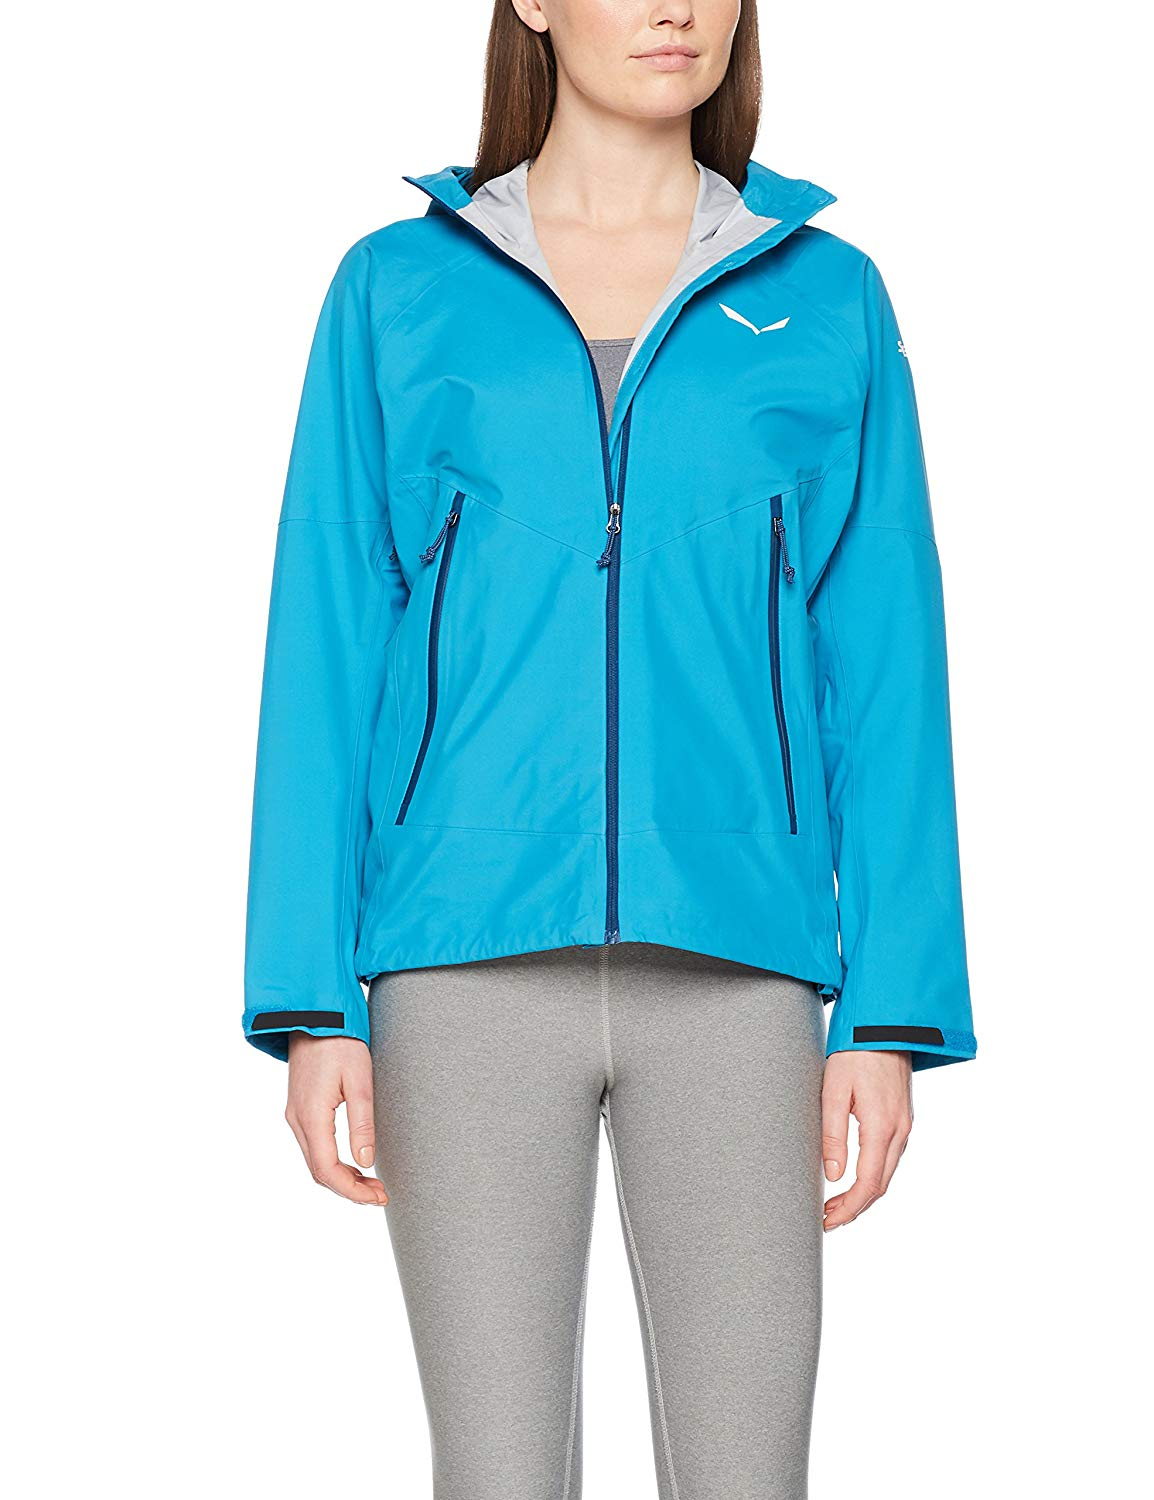 Salewa Damen Sesvenna Softshell Jacke - blue caneel bay -